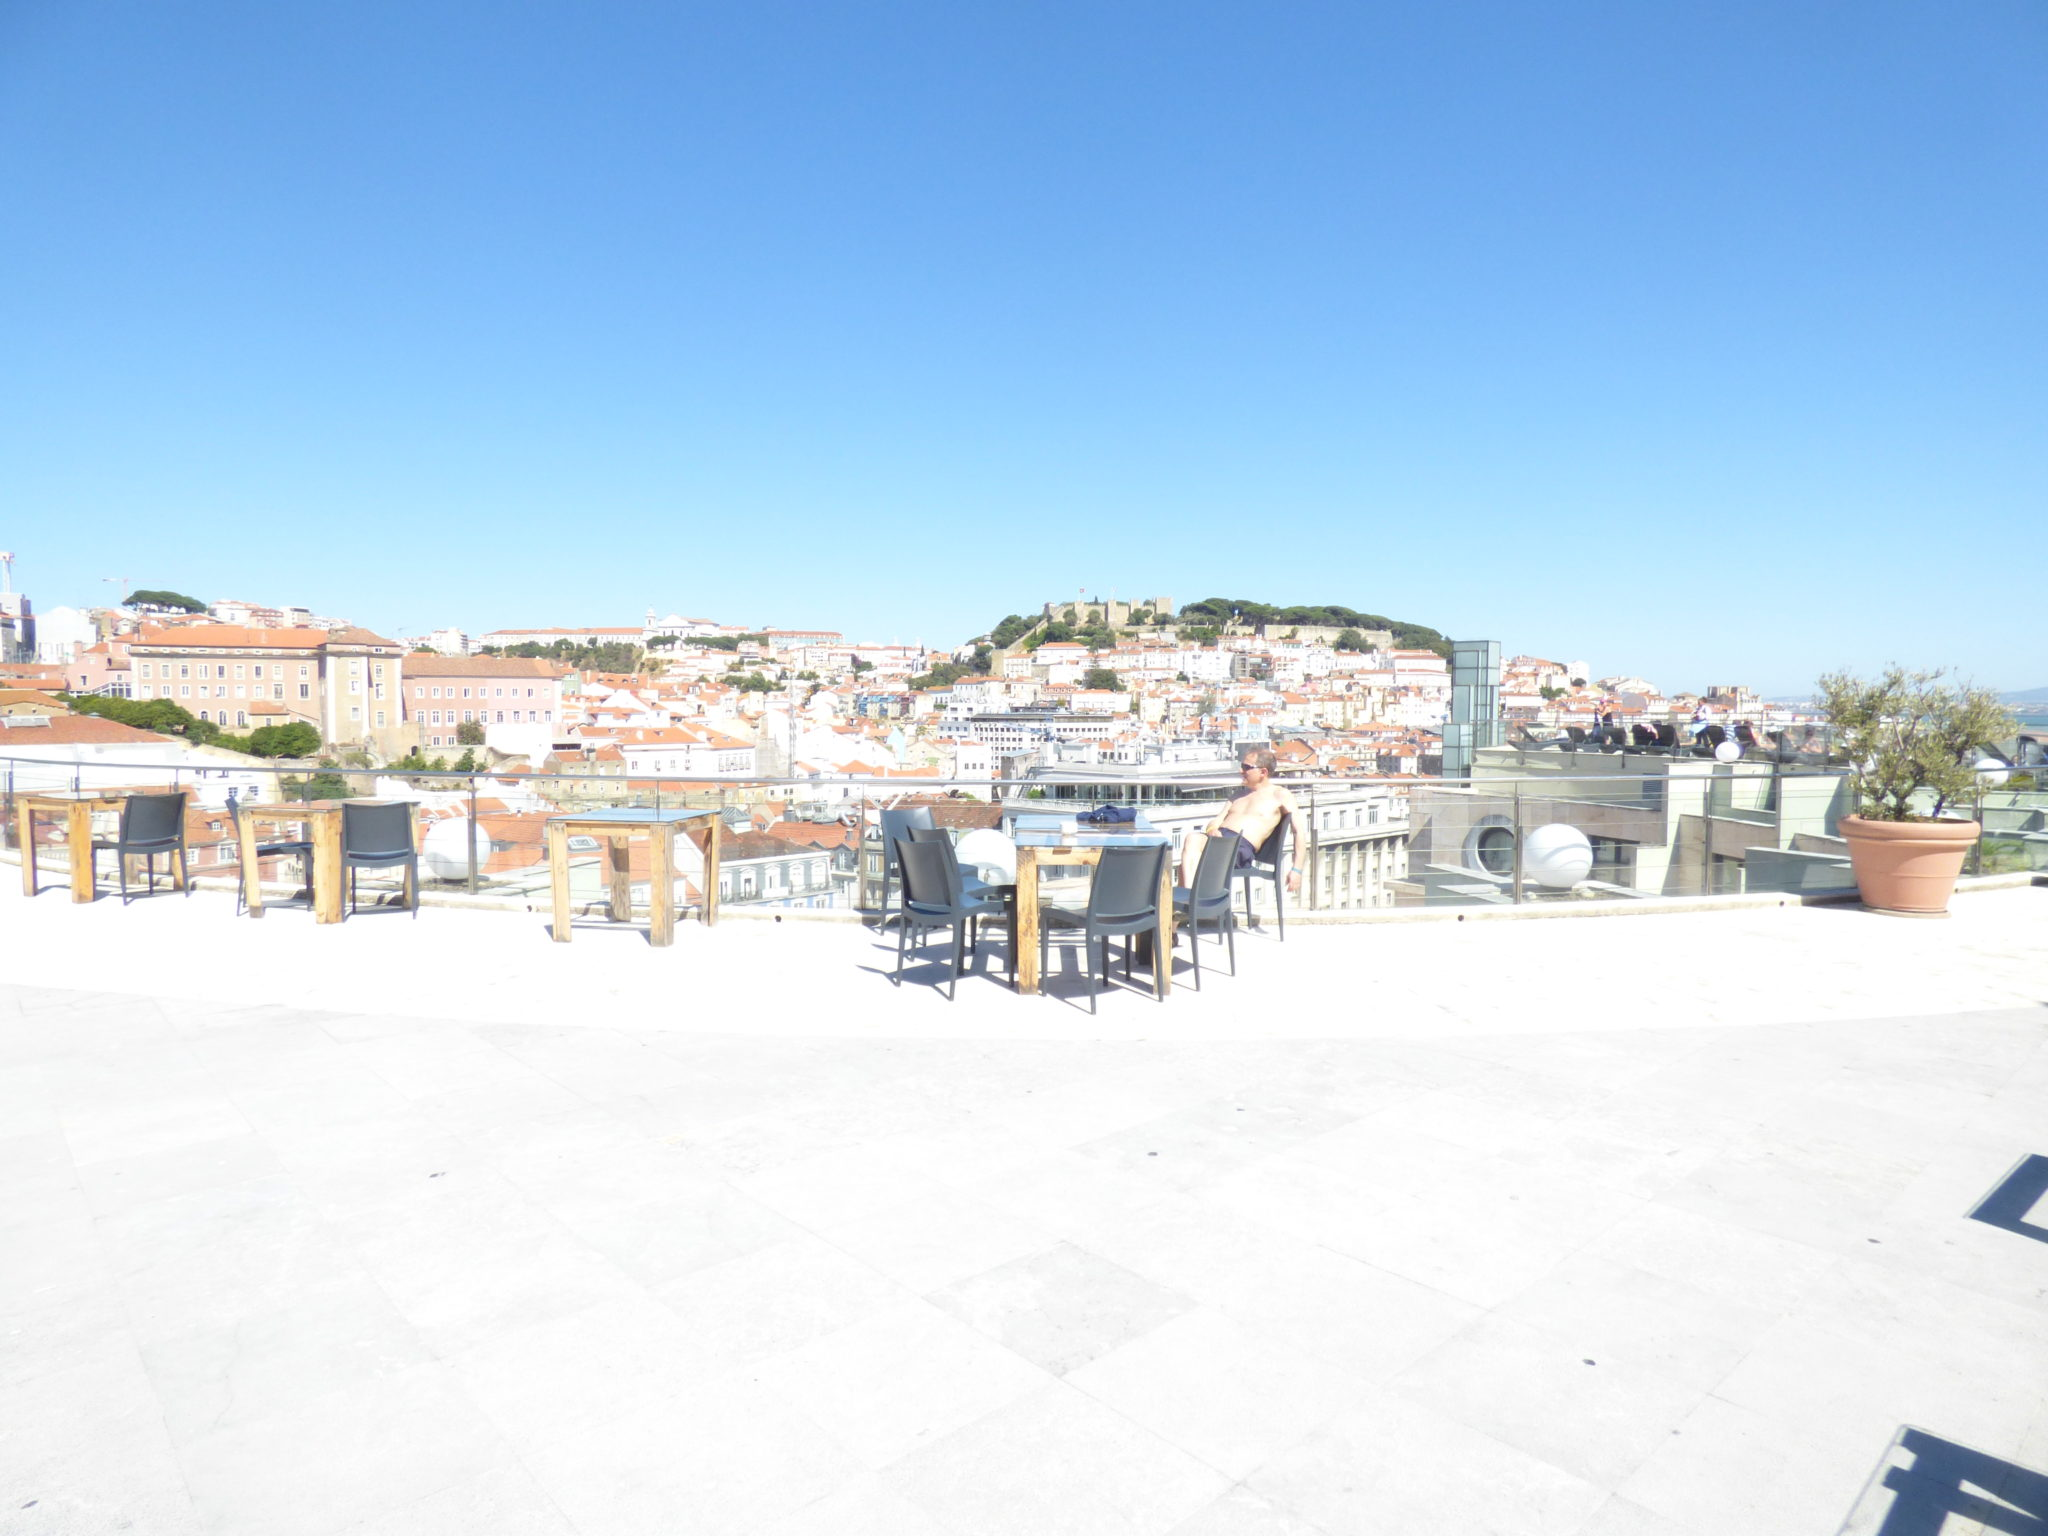 rooftop vip eden bar view point river drink chill lisbon party friends beer